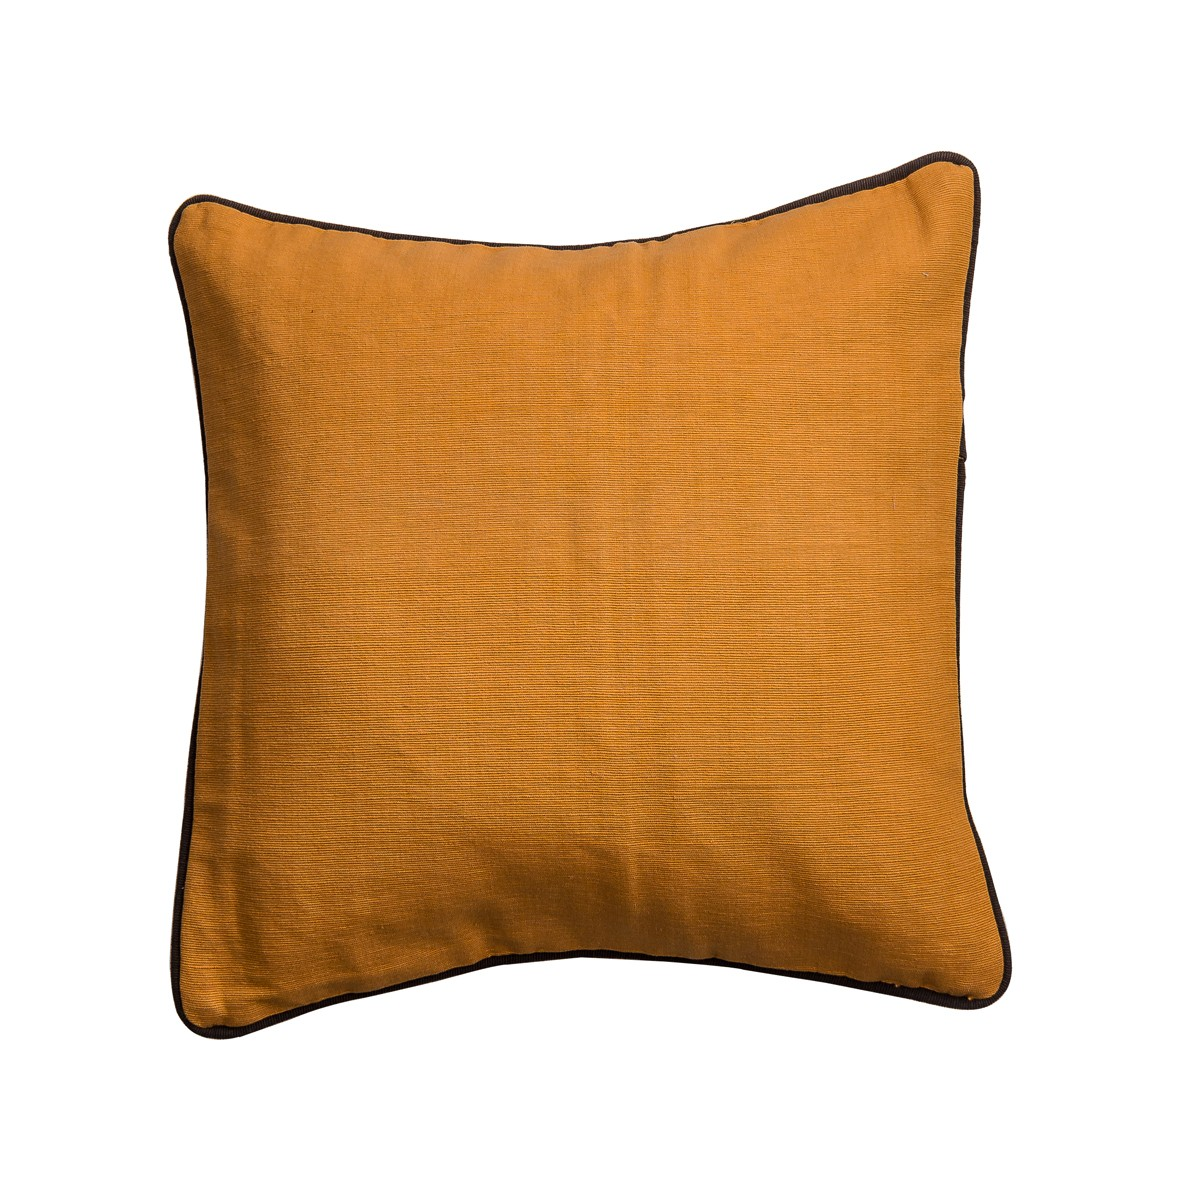 Single Square Orange Cushion Cover with Piping